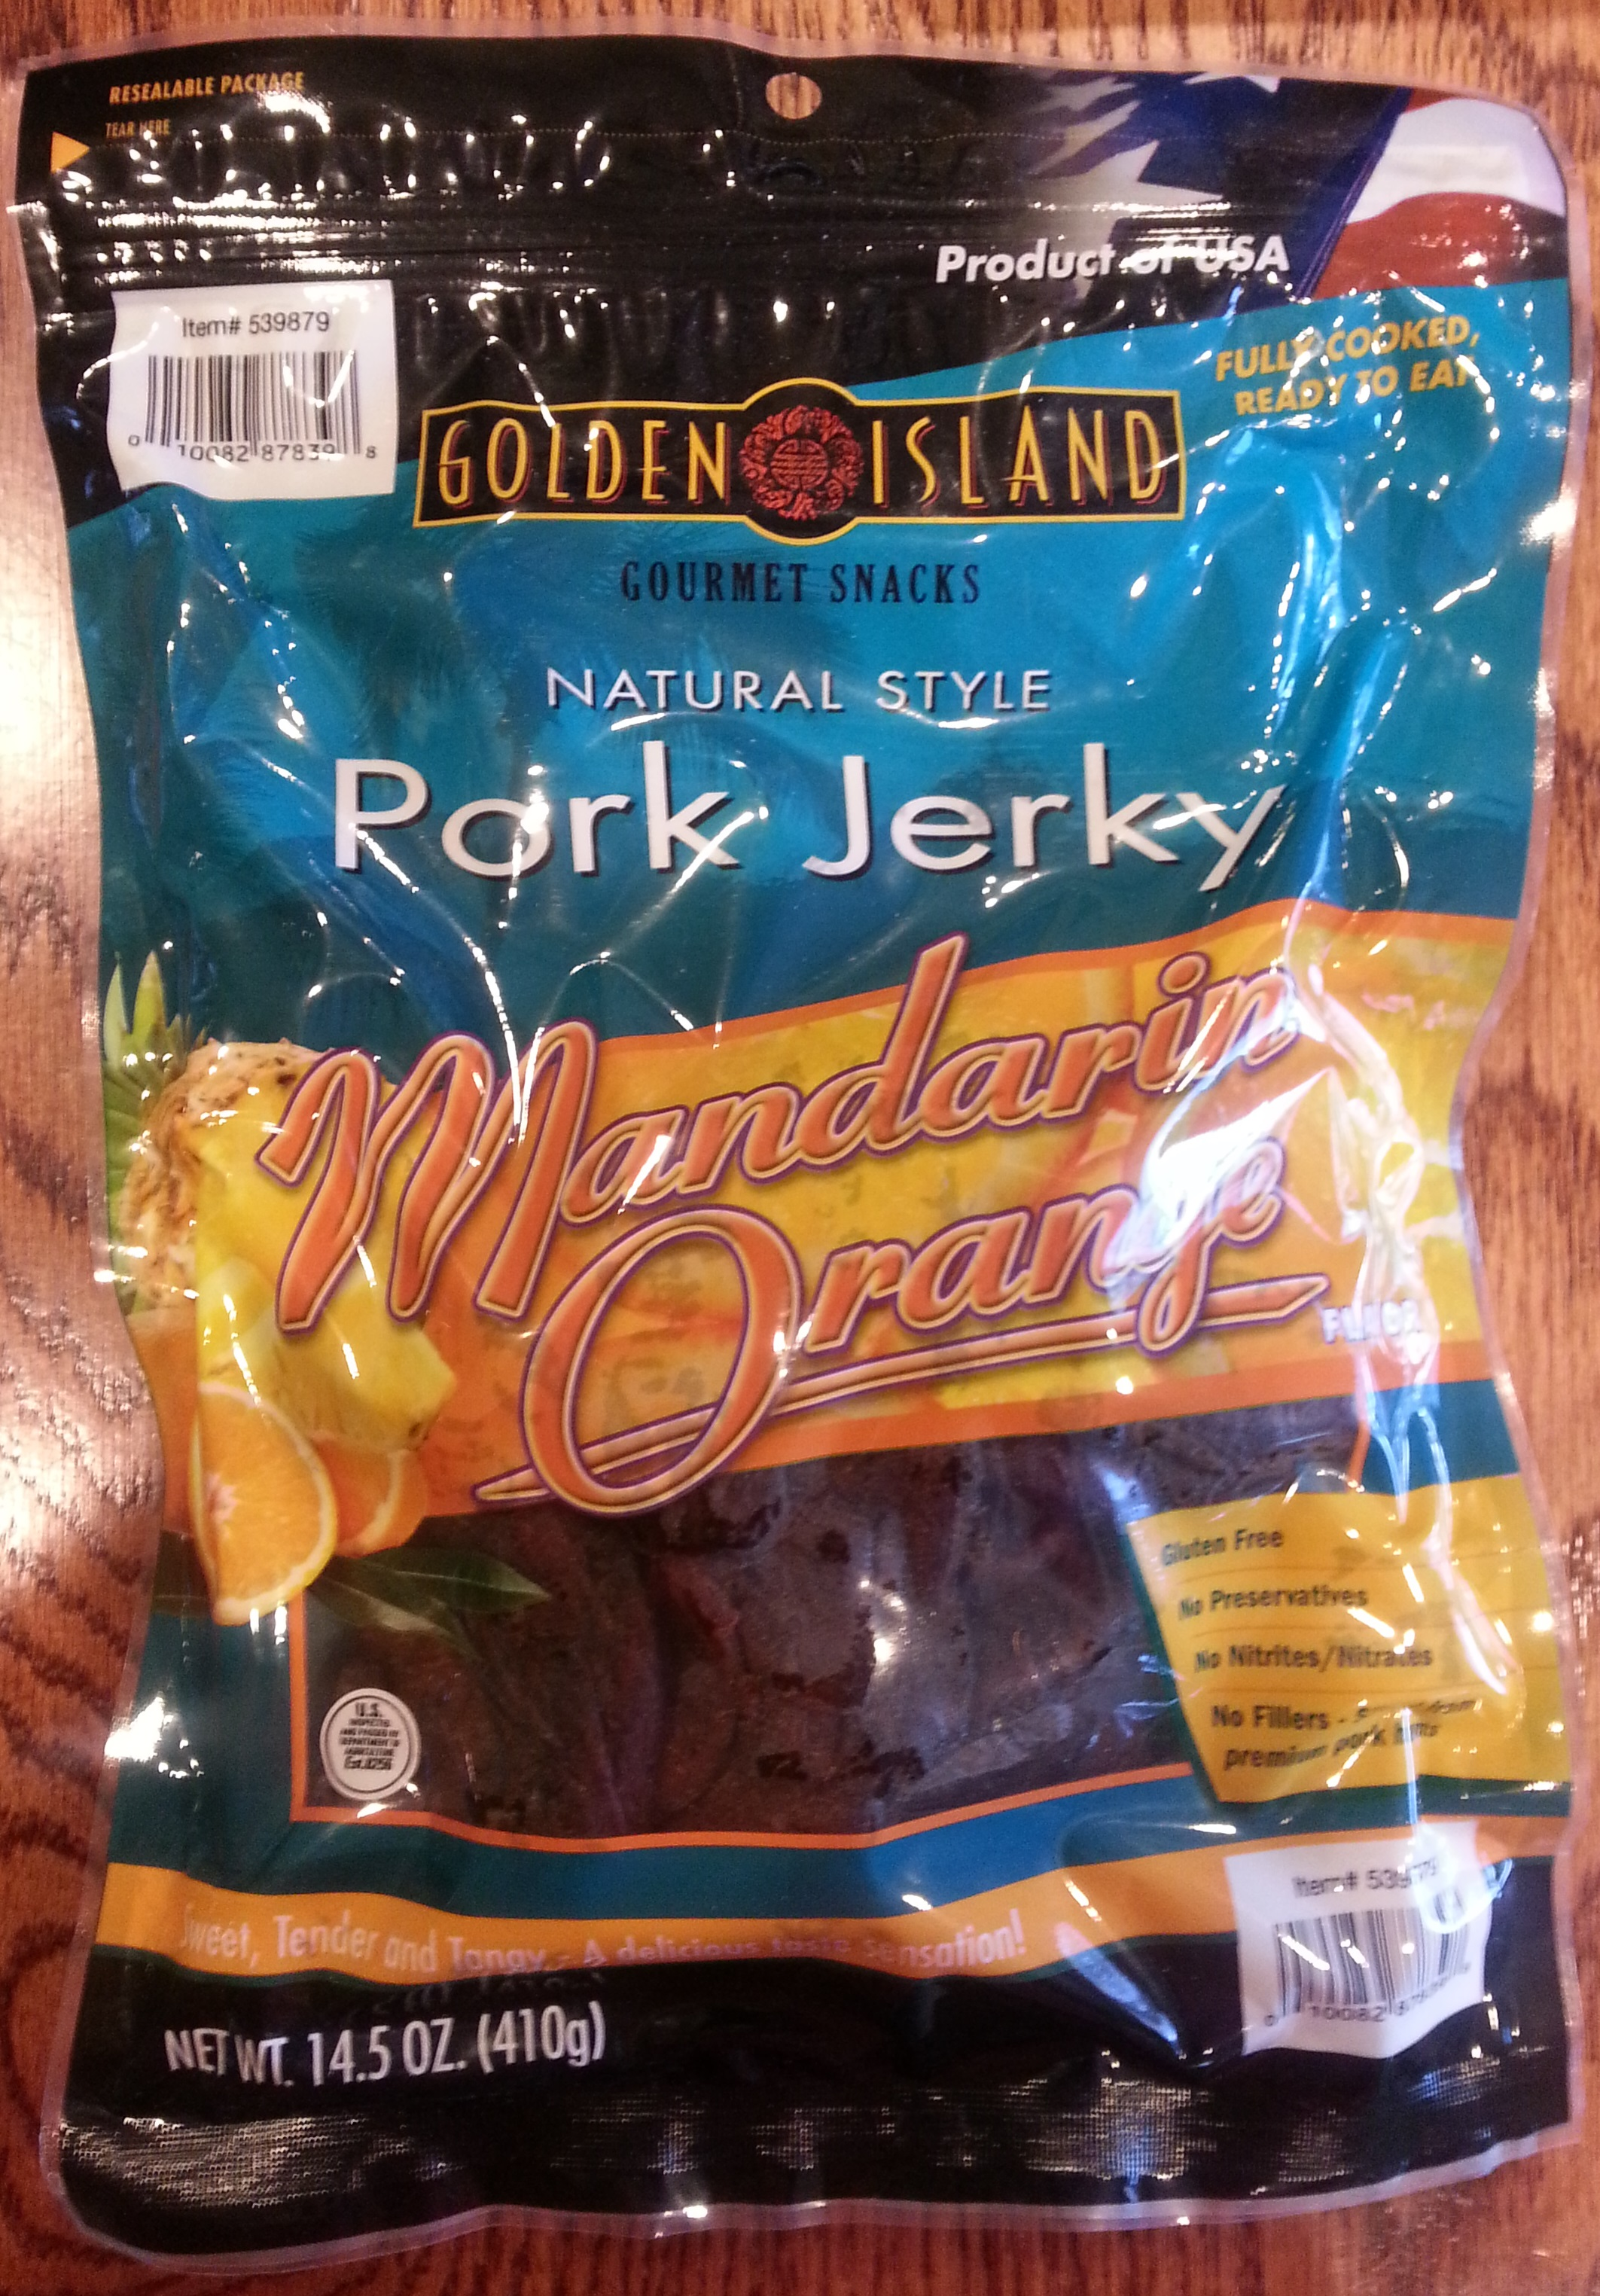 Golden Island Mandarin Orange Pork Jerky